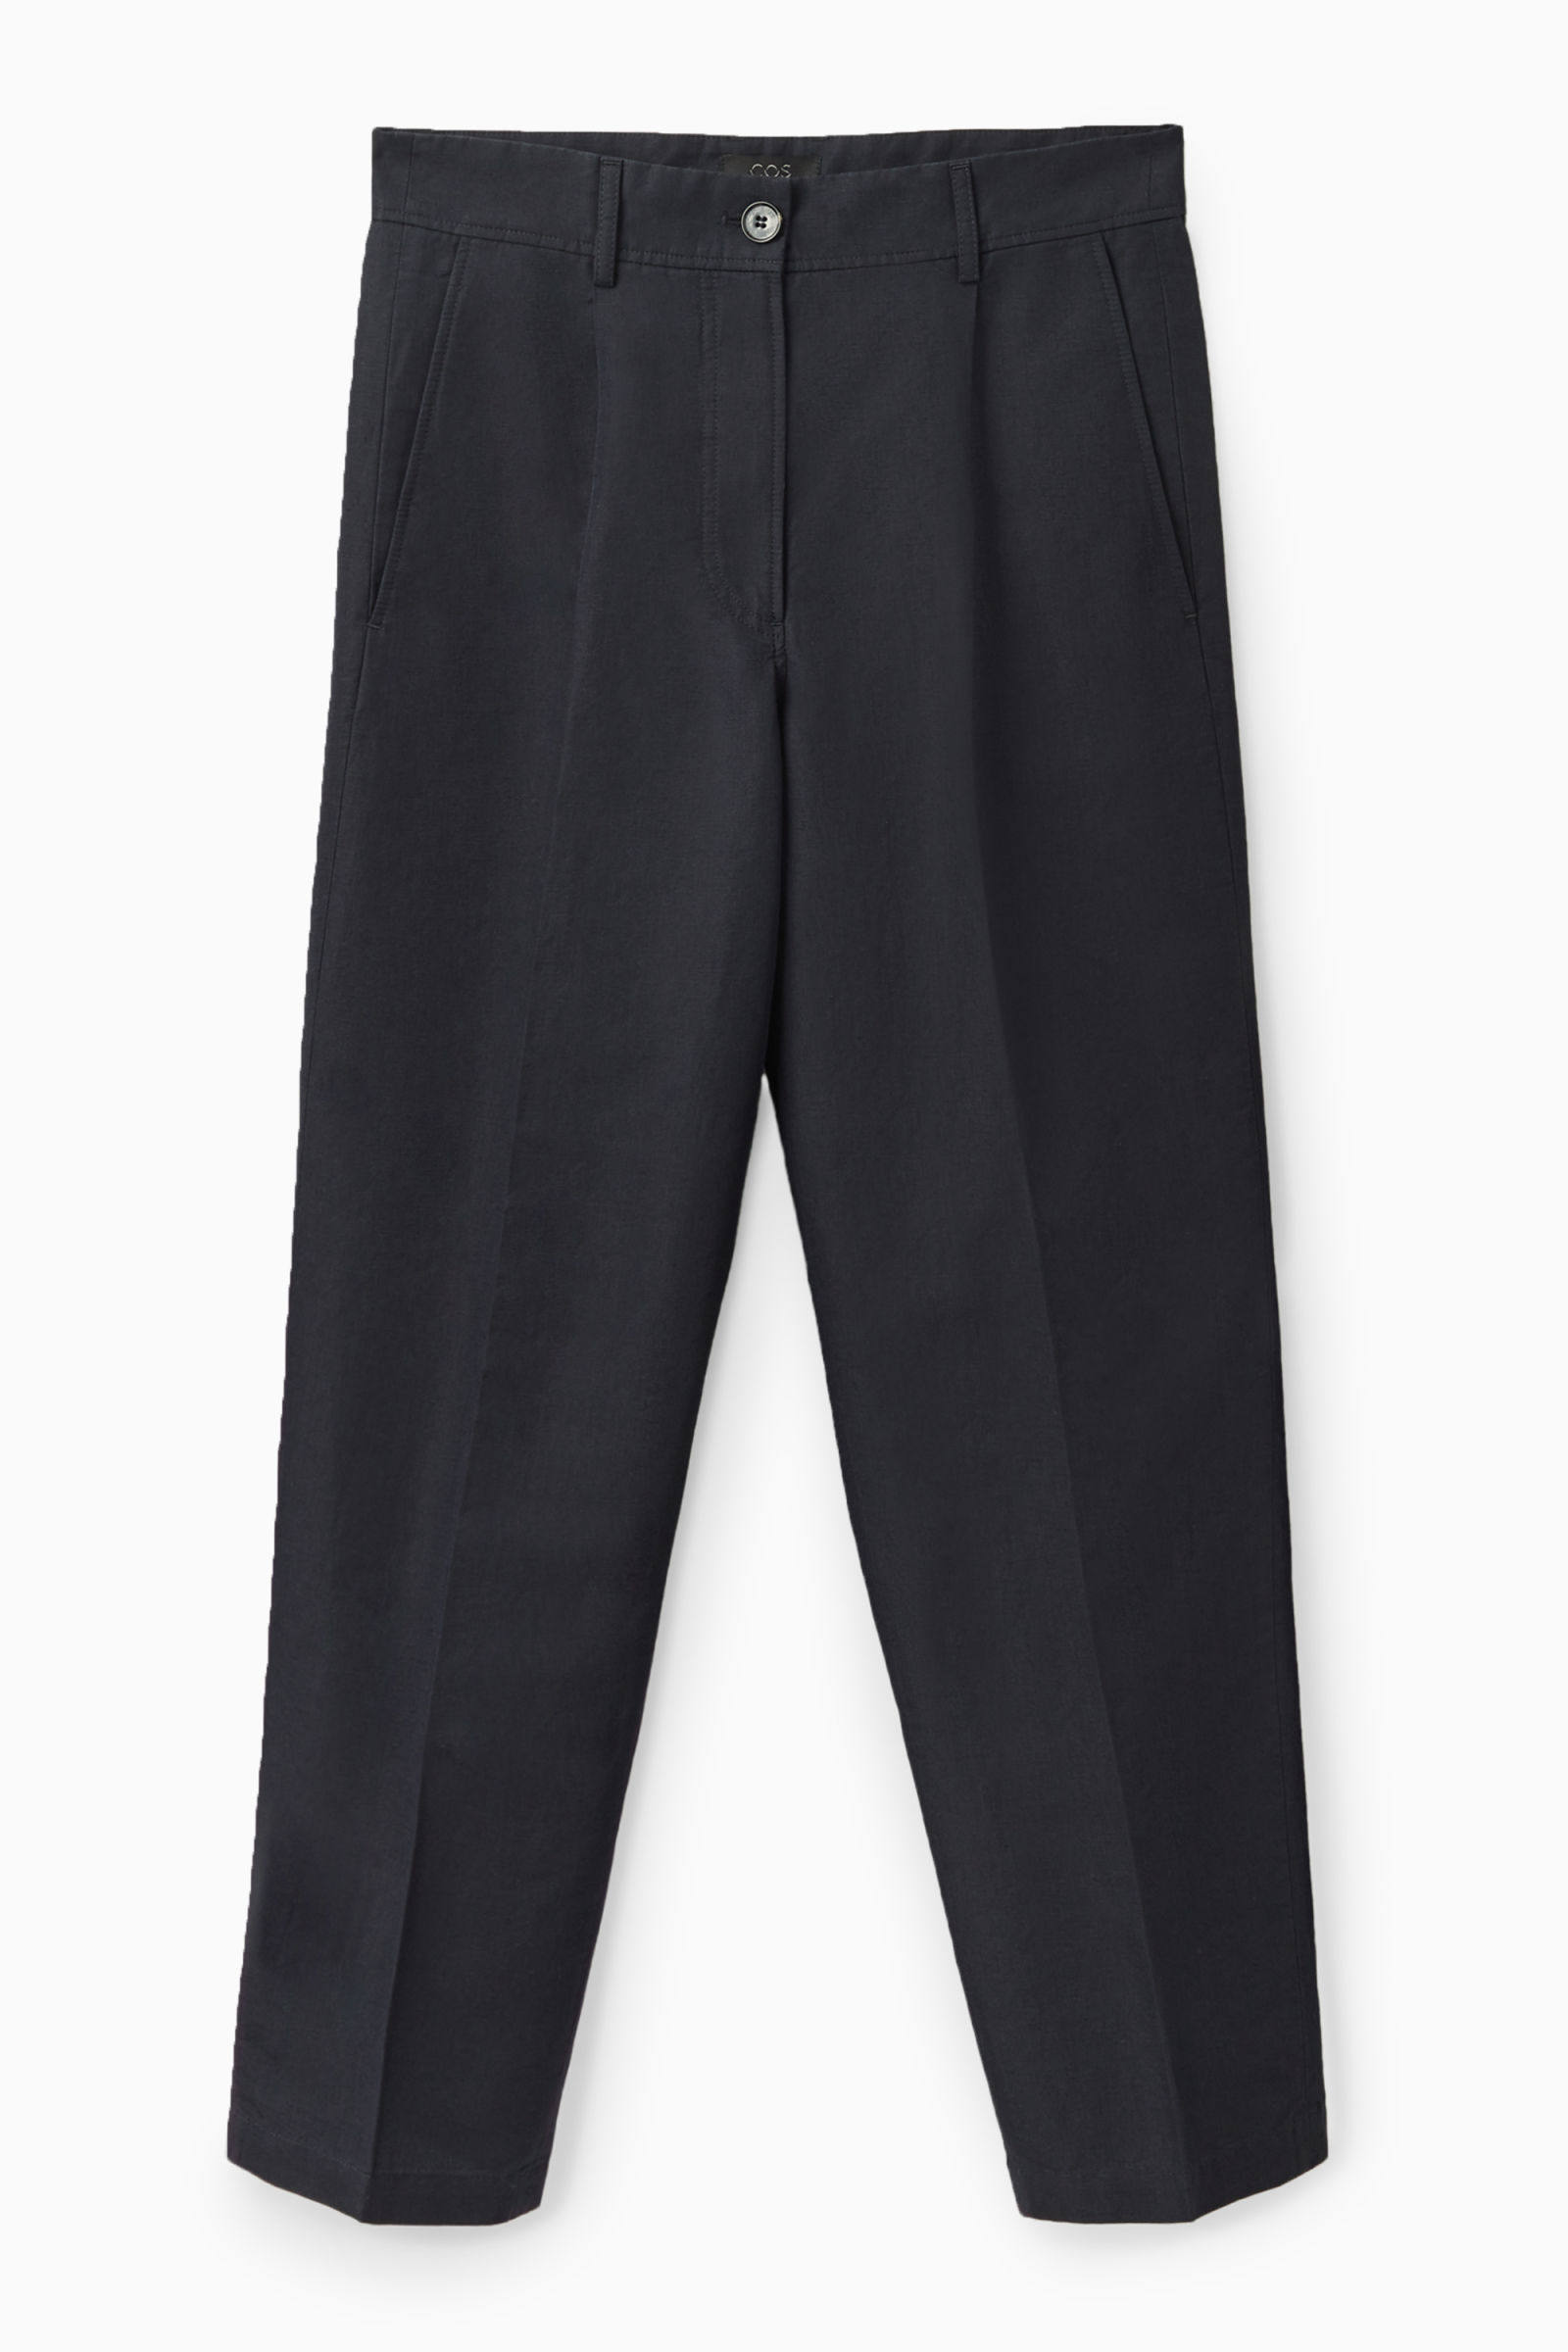 COS LINEN TROUSERS,navy